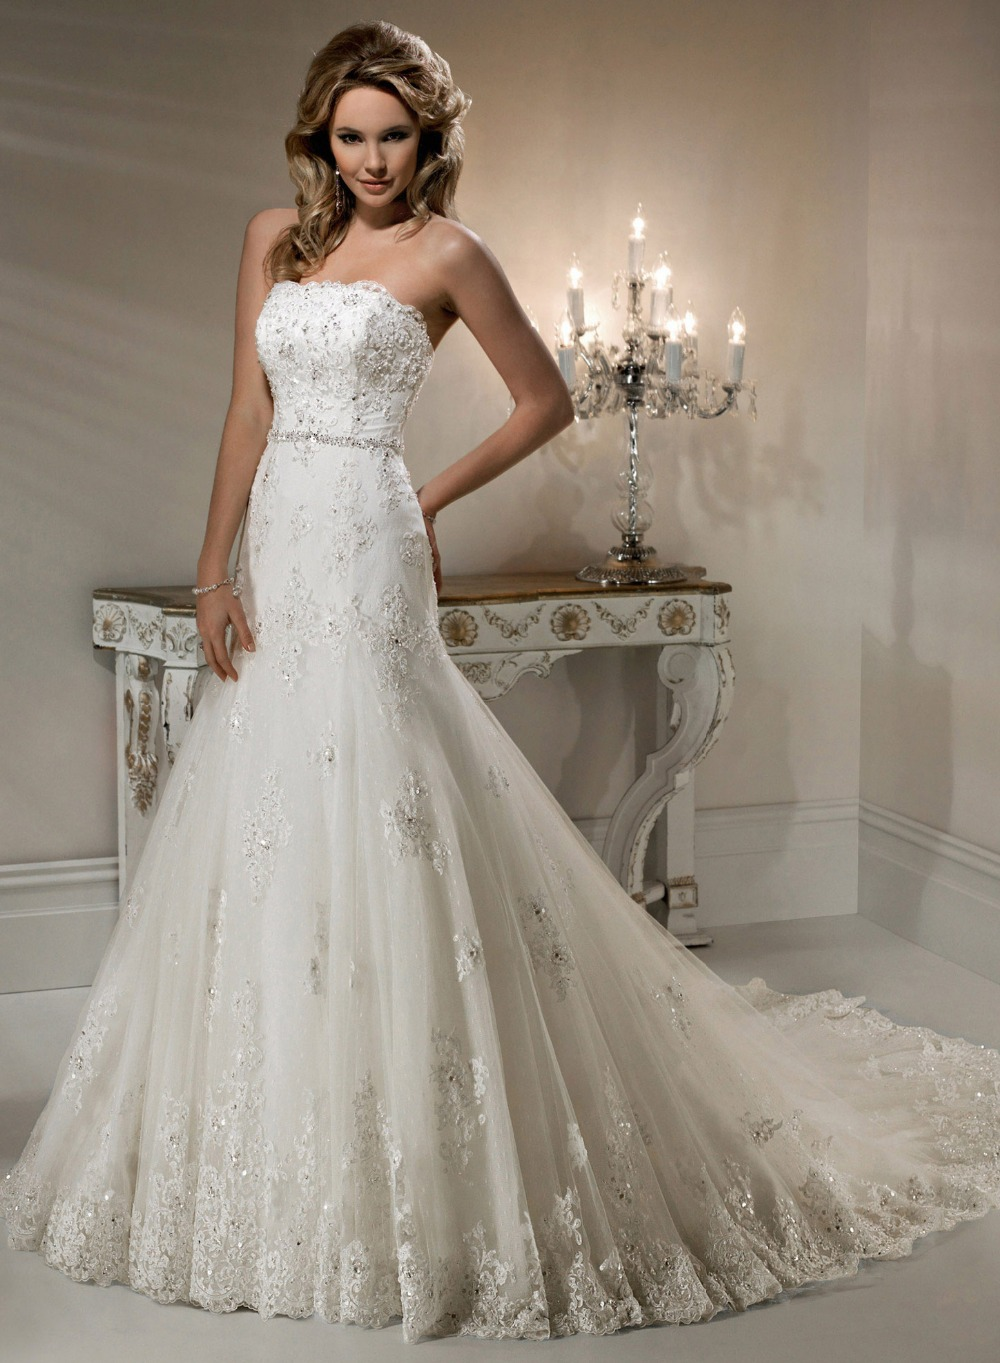 Wedding dresses yw010 hot sale new elegant mermaid bridal for Wedding dress for sale cheap